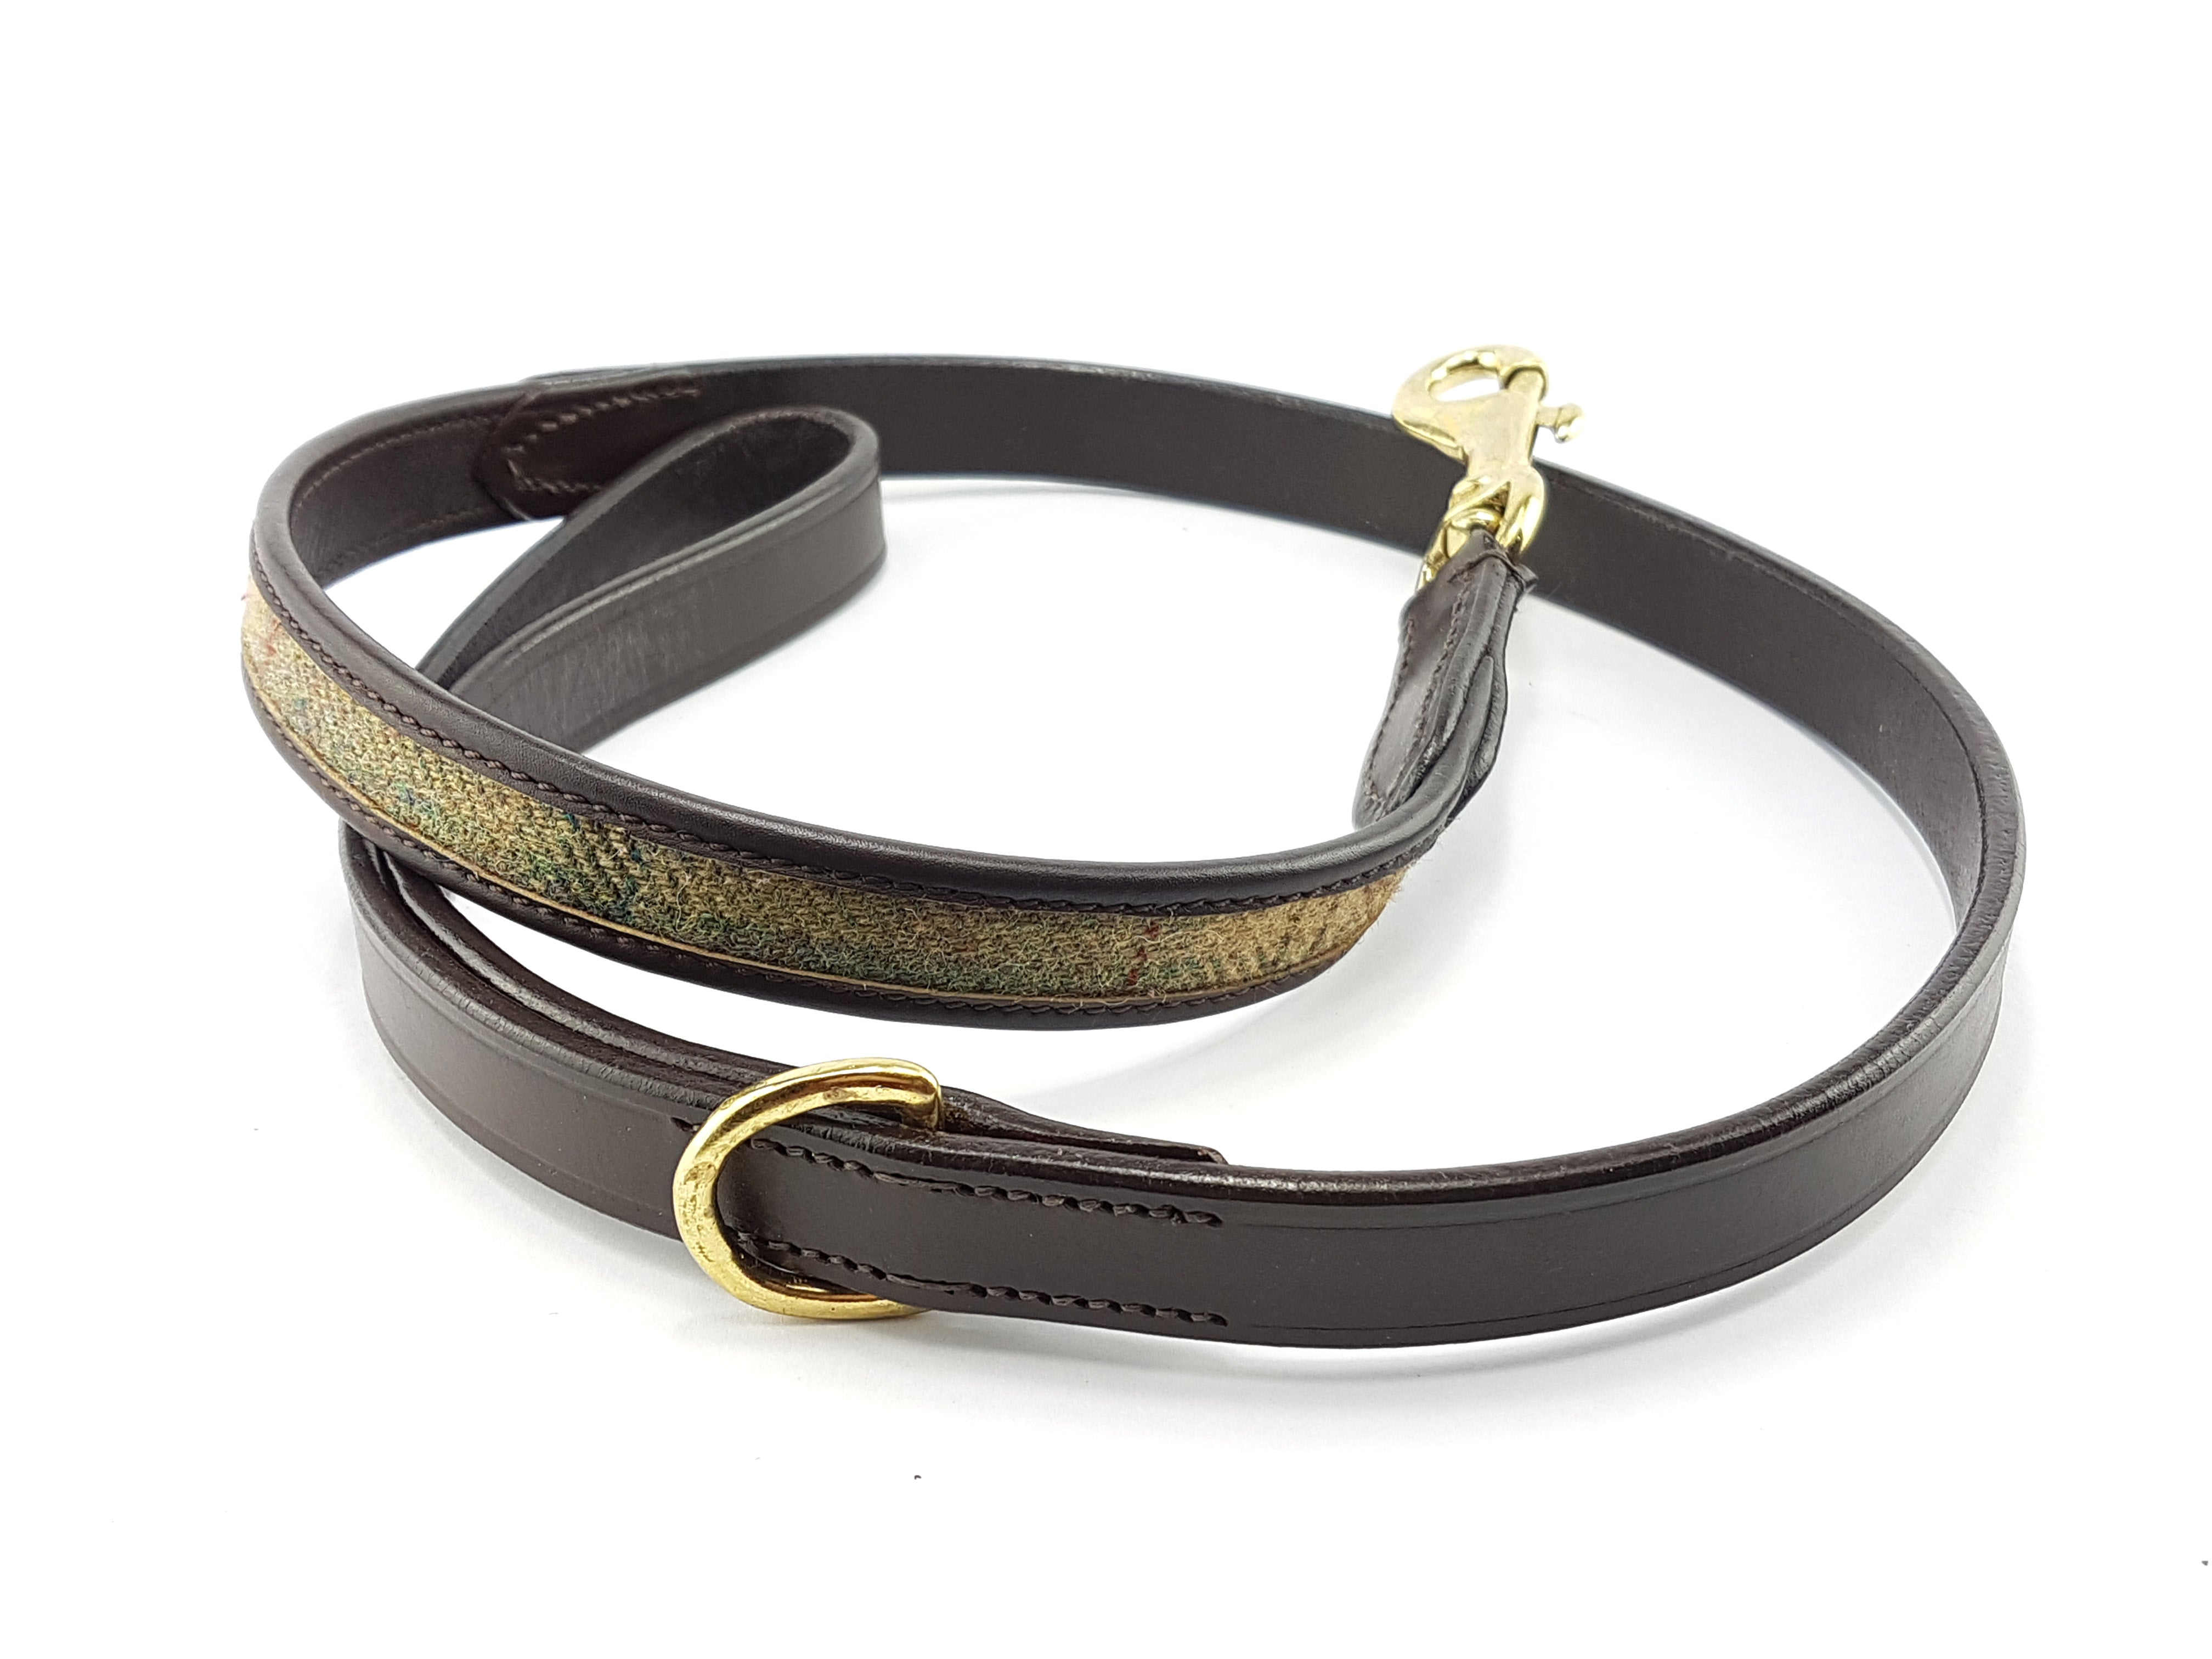 'The Balmoral' Tweed & Leather Dog Lead